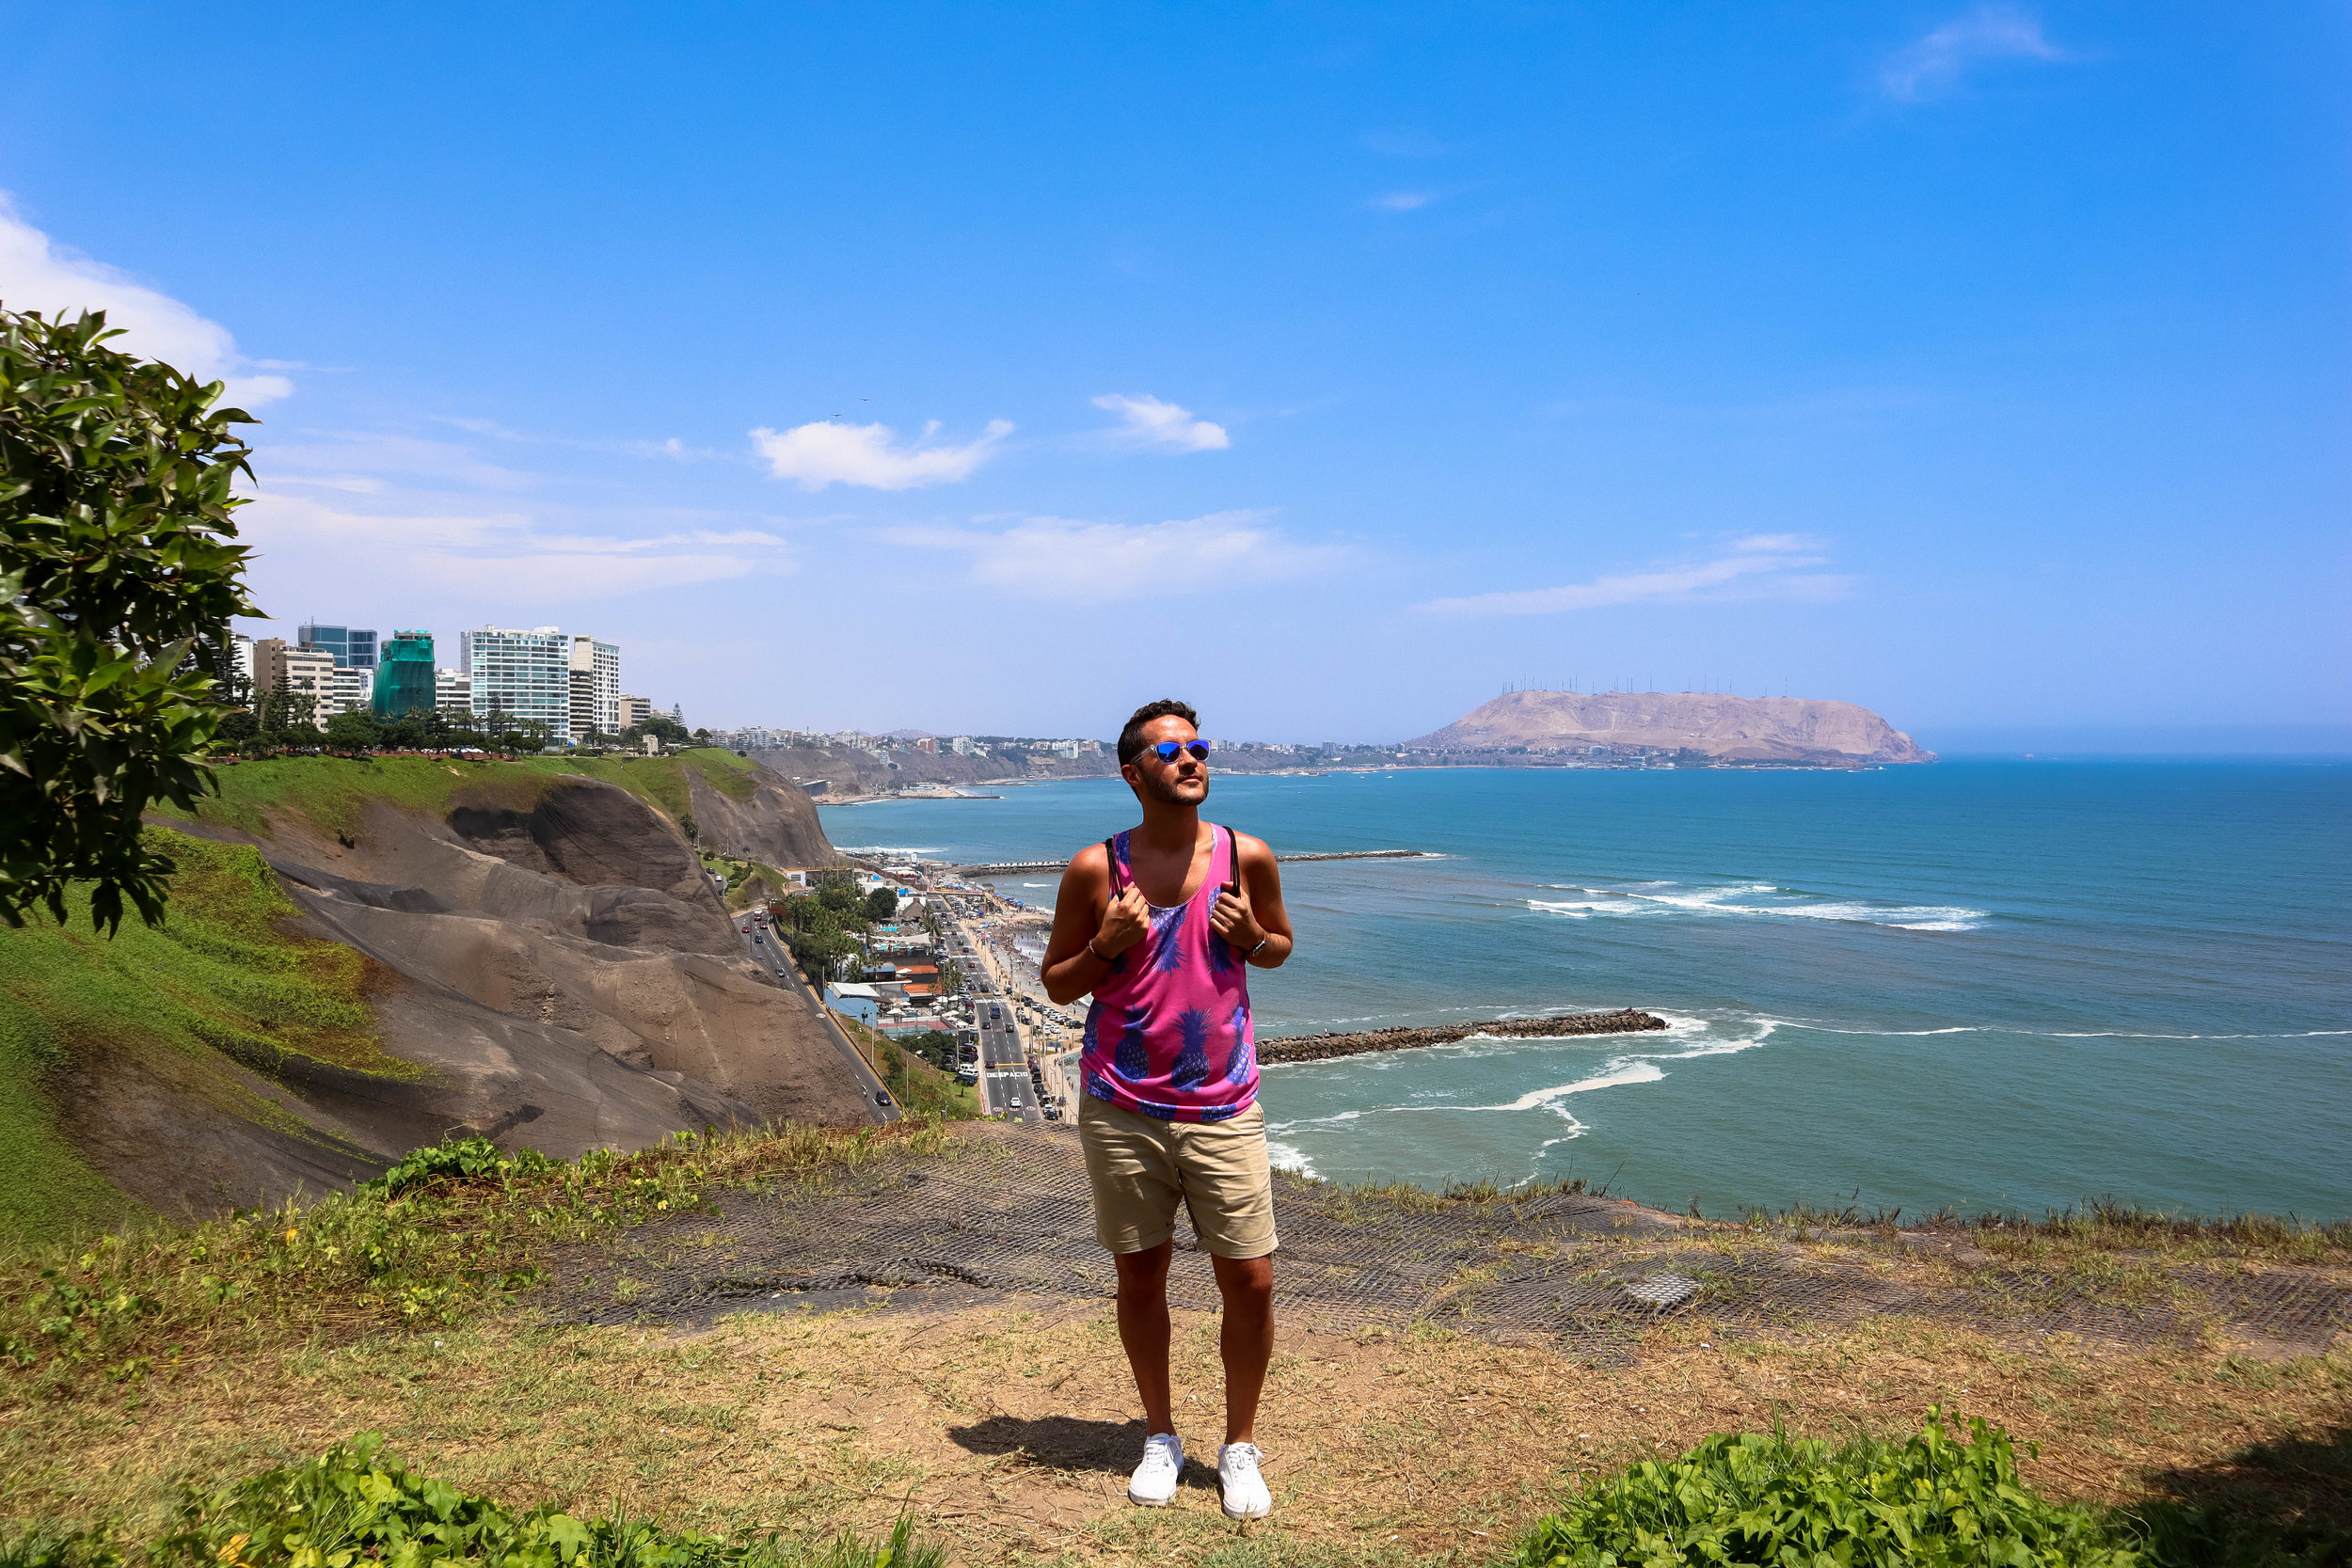 The Amazing view from Miraflores over the Pacific Ocean